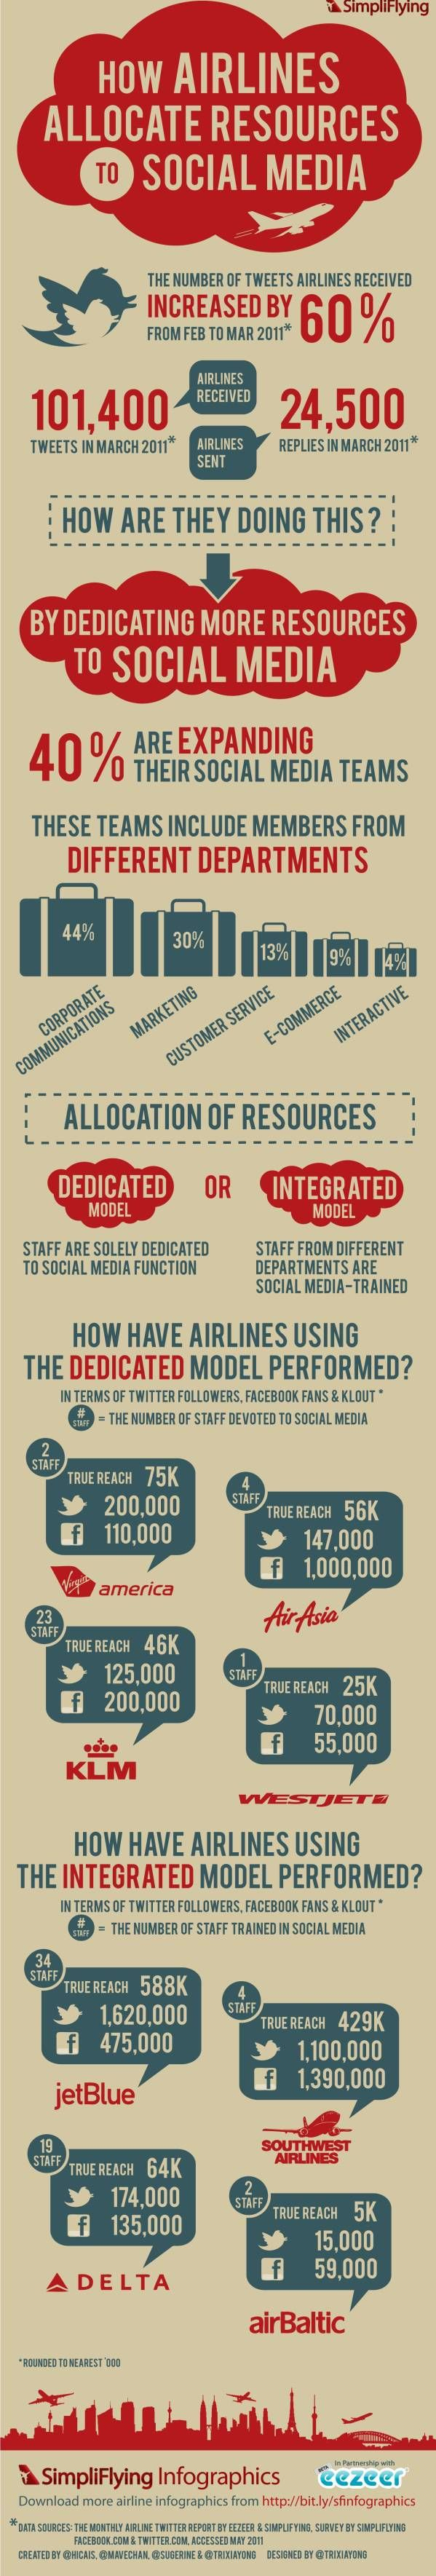 """[ìnfographic] """"How Airlines allocate resources to social Media"""" Jun-2011 by Simpliflying.com"""